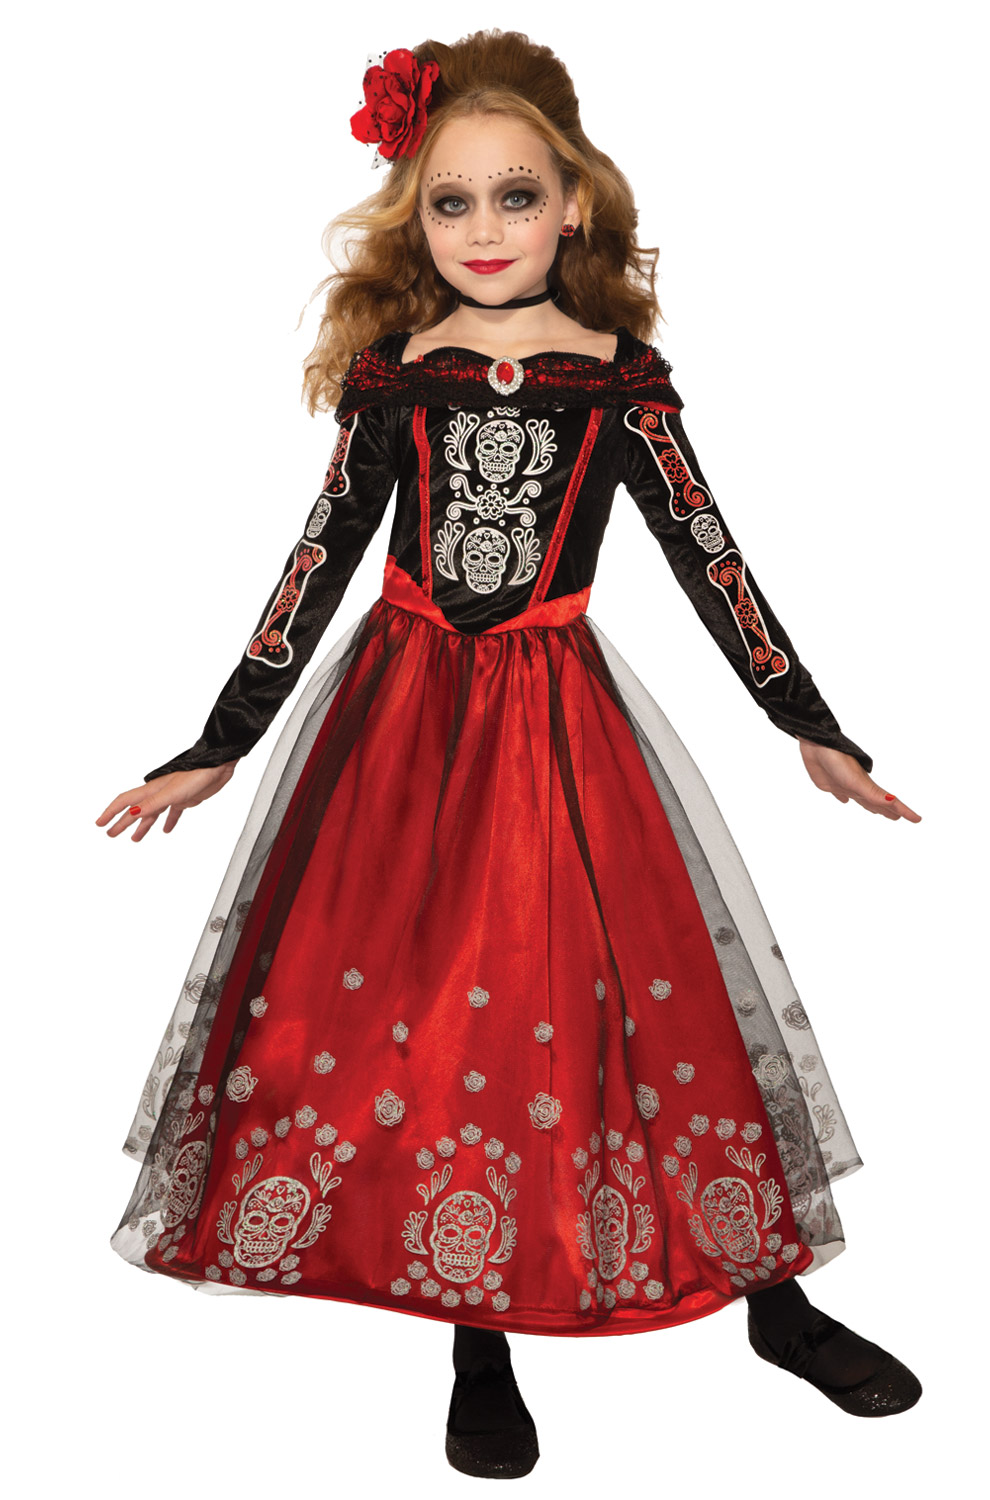 DAY OF THE DEAD PRINCESS COSTUME FOR GIRLS